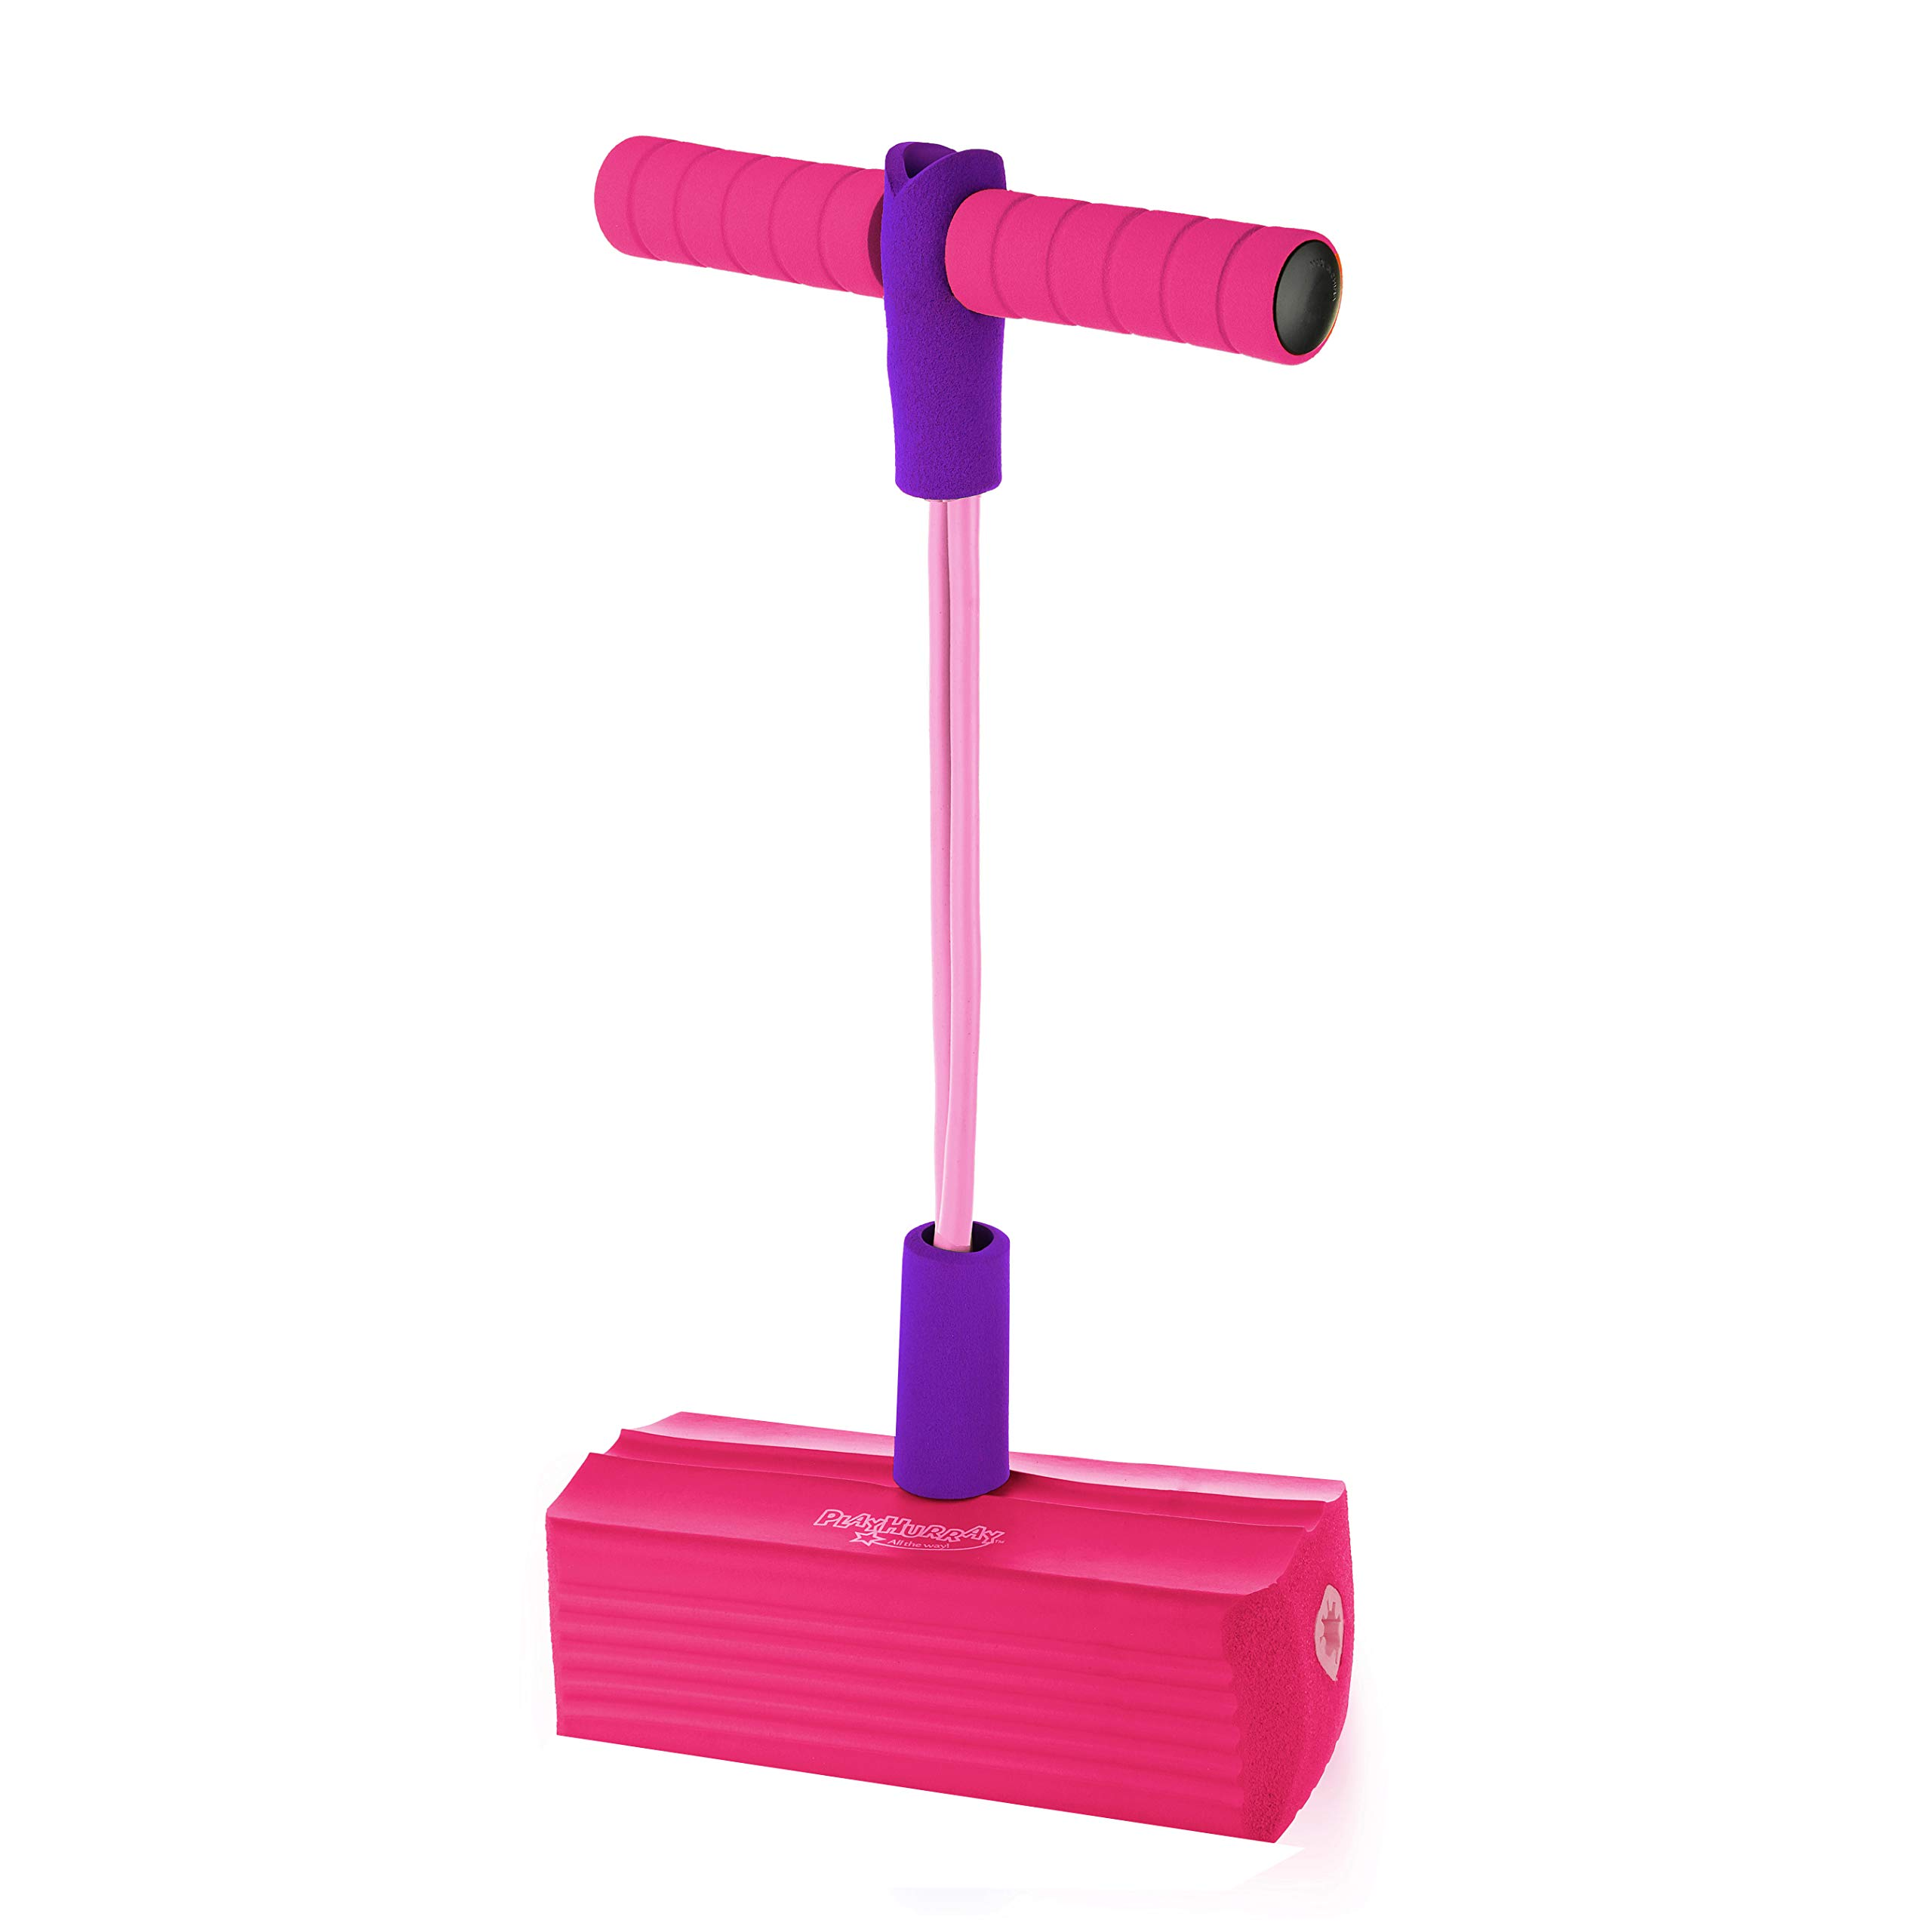 The Original Foam Pogo Jumper for Kids 100% Safe Pogo Stick, Strong Bungee Toy for Toddlers, Fun Foam Hopper for Children Boys/Girls, Squeaks with Each hop! Supports up to 250lbs. (Pink/Purple) by PlayHurray